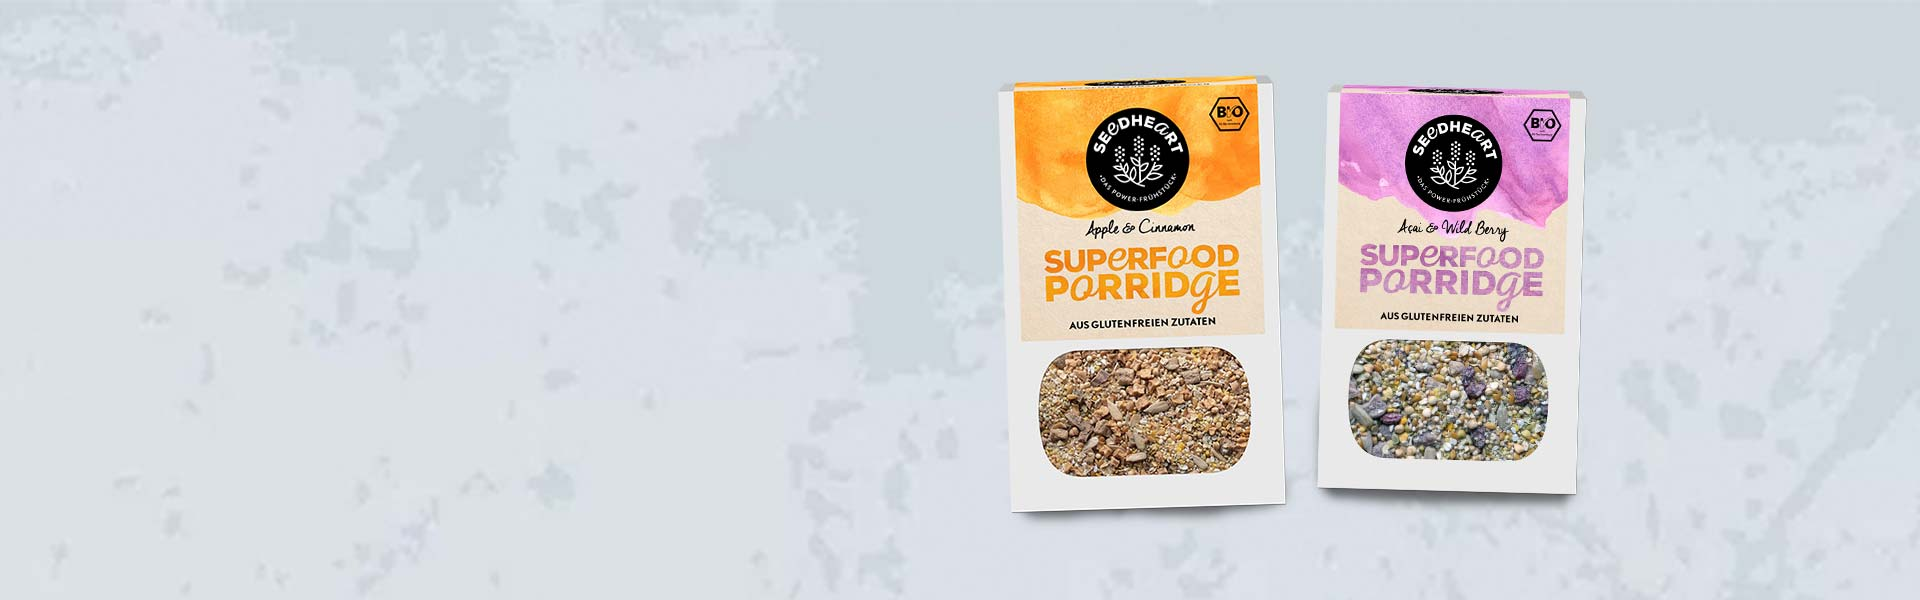 Superfood Porridge - Slider